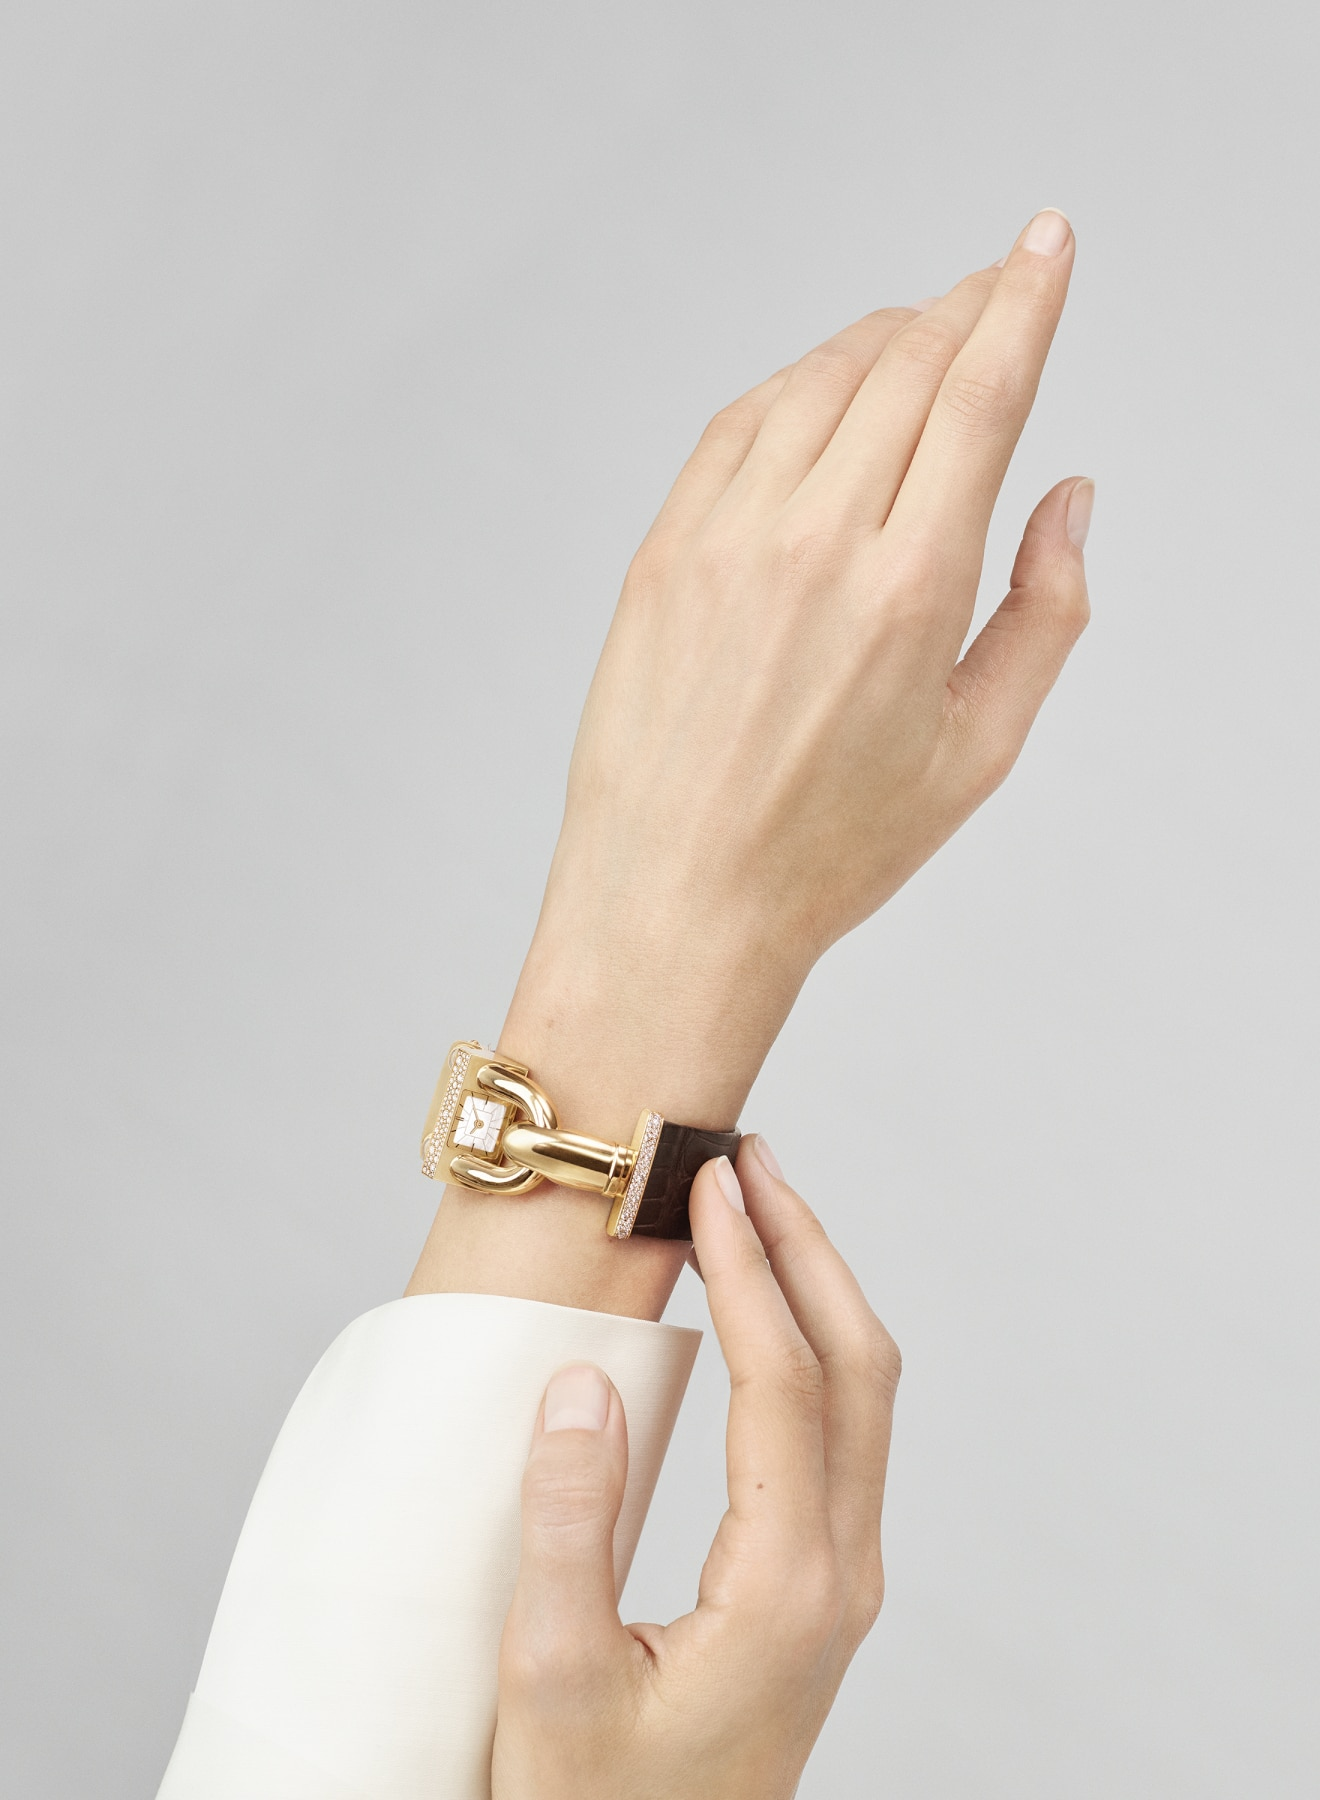 Cadenas collection, watch, yellow gold, brown leather and diamonds, hand pointing upwards, Van Cleef & Arpels